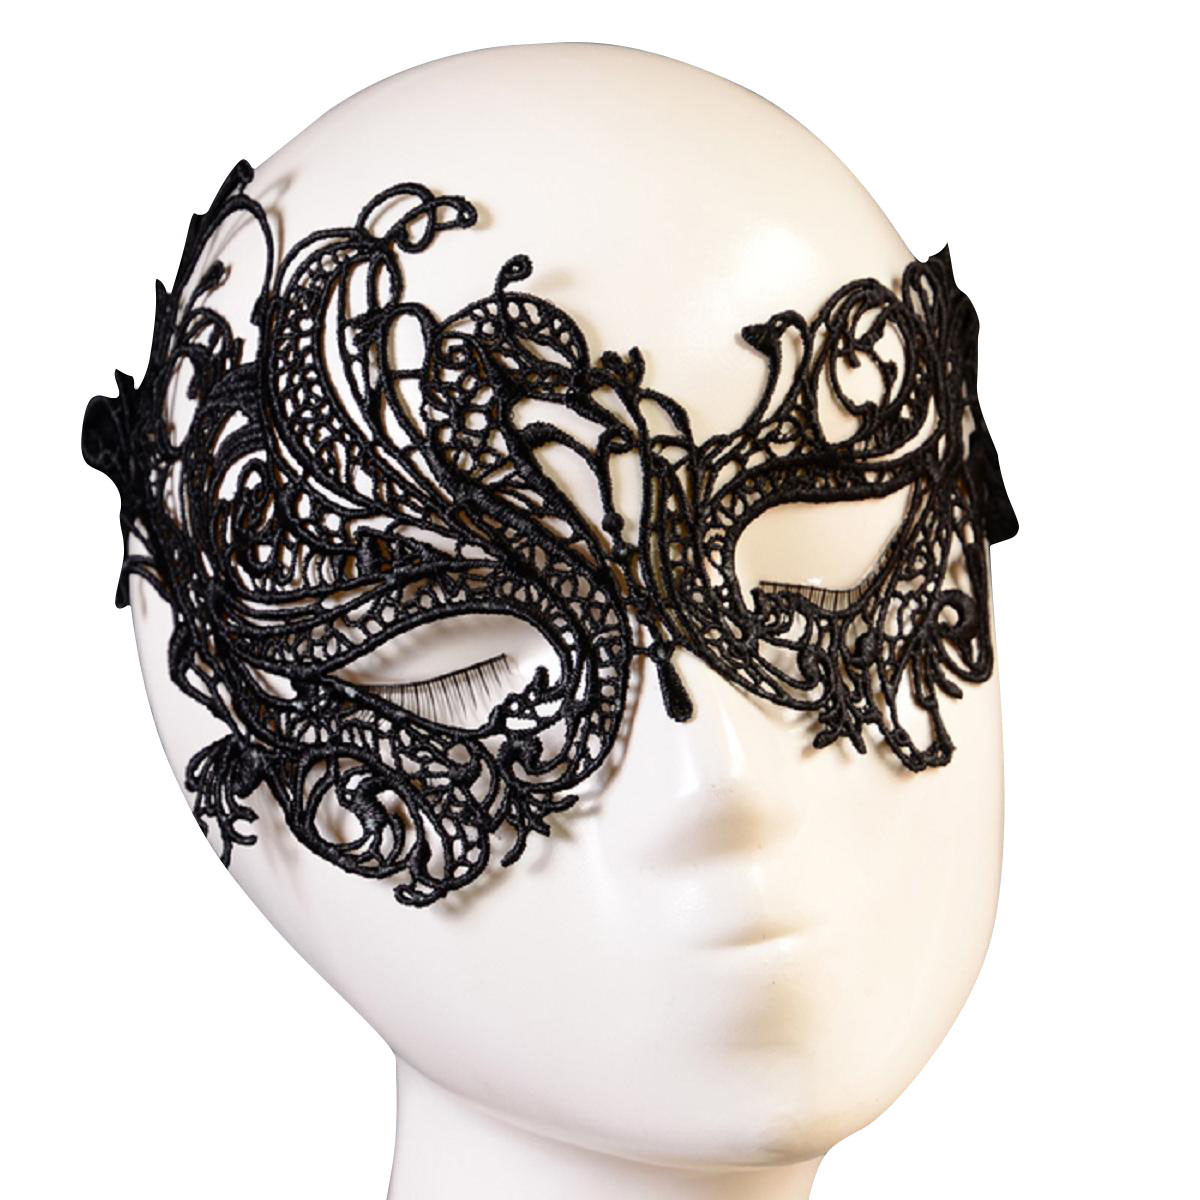 Fashion Sexy Lace Eye Mask Masquerade Halloween Party Fancy Costume